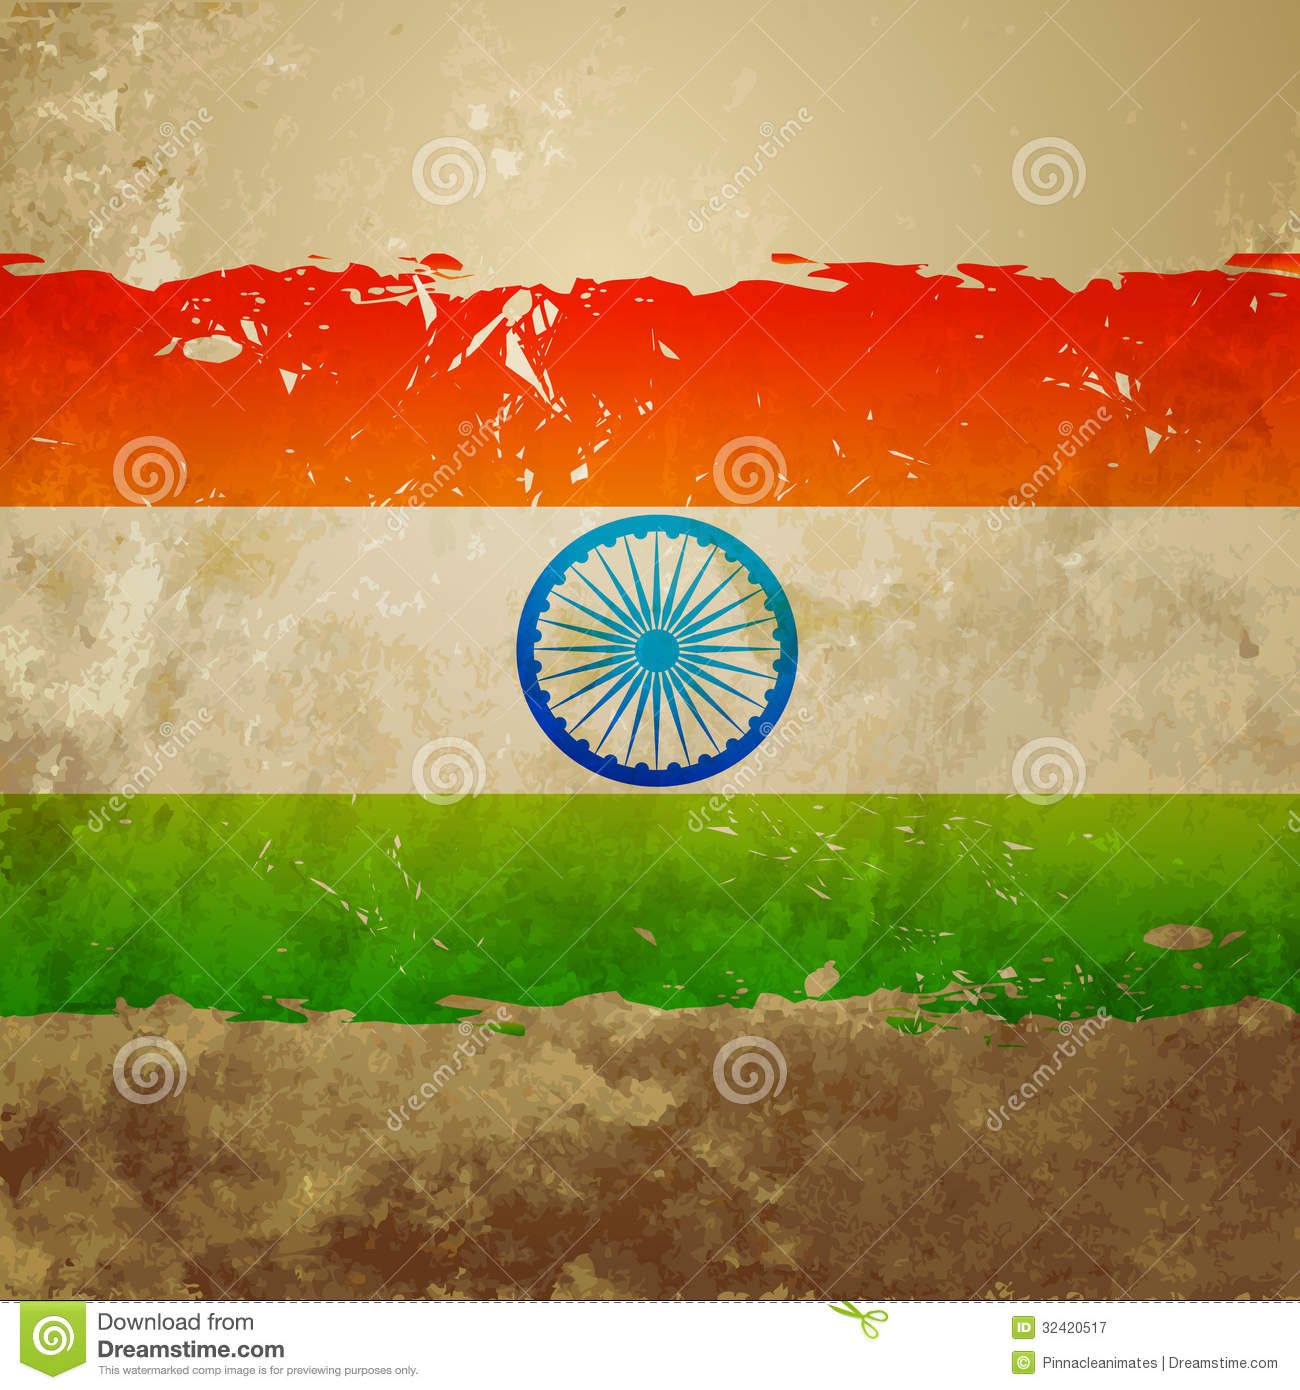 Ashok Chakra 3d Wallpaper Grunge Style Indian Flag Royalty Free Stock Photography